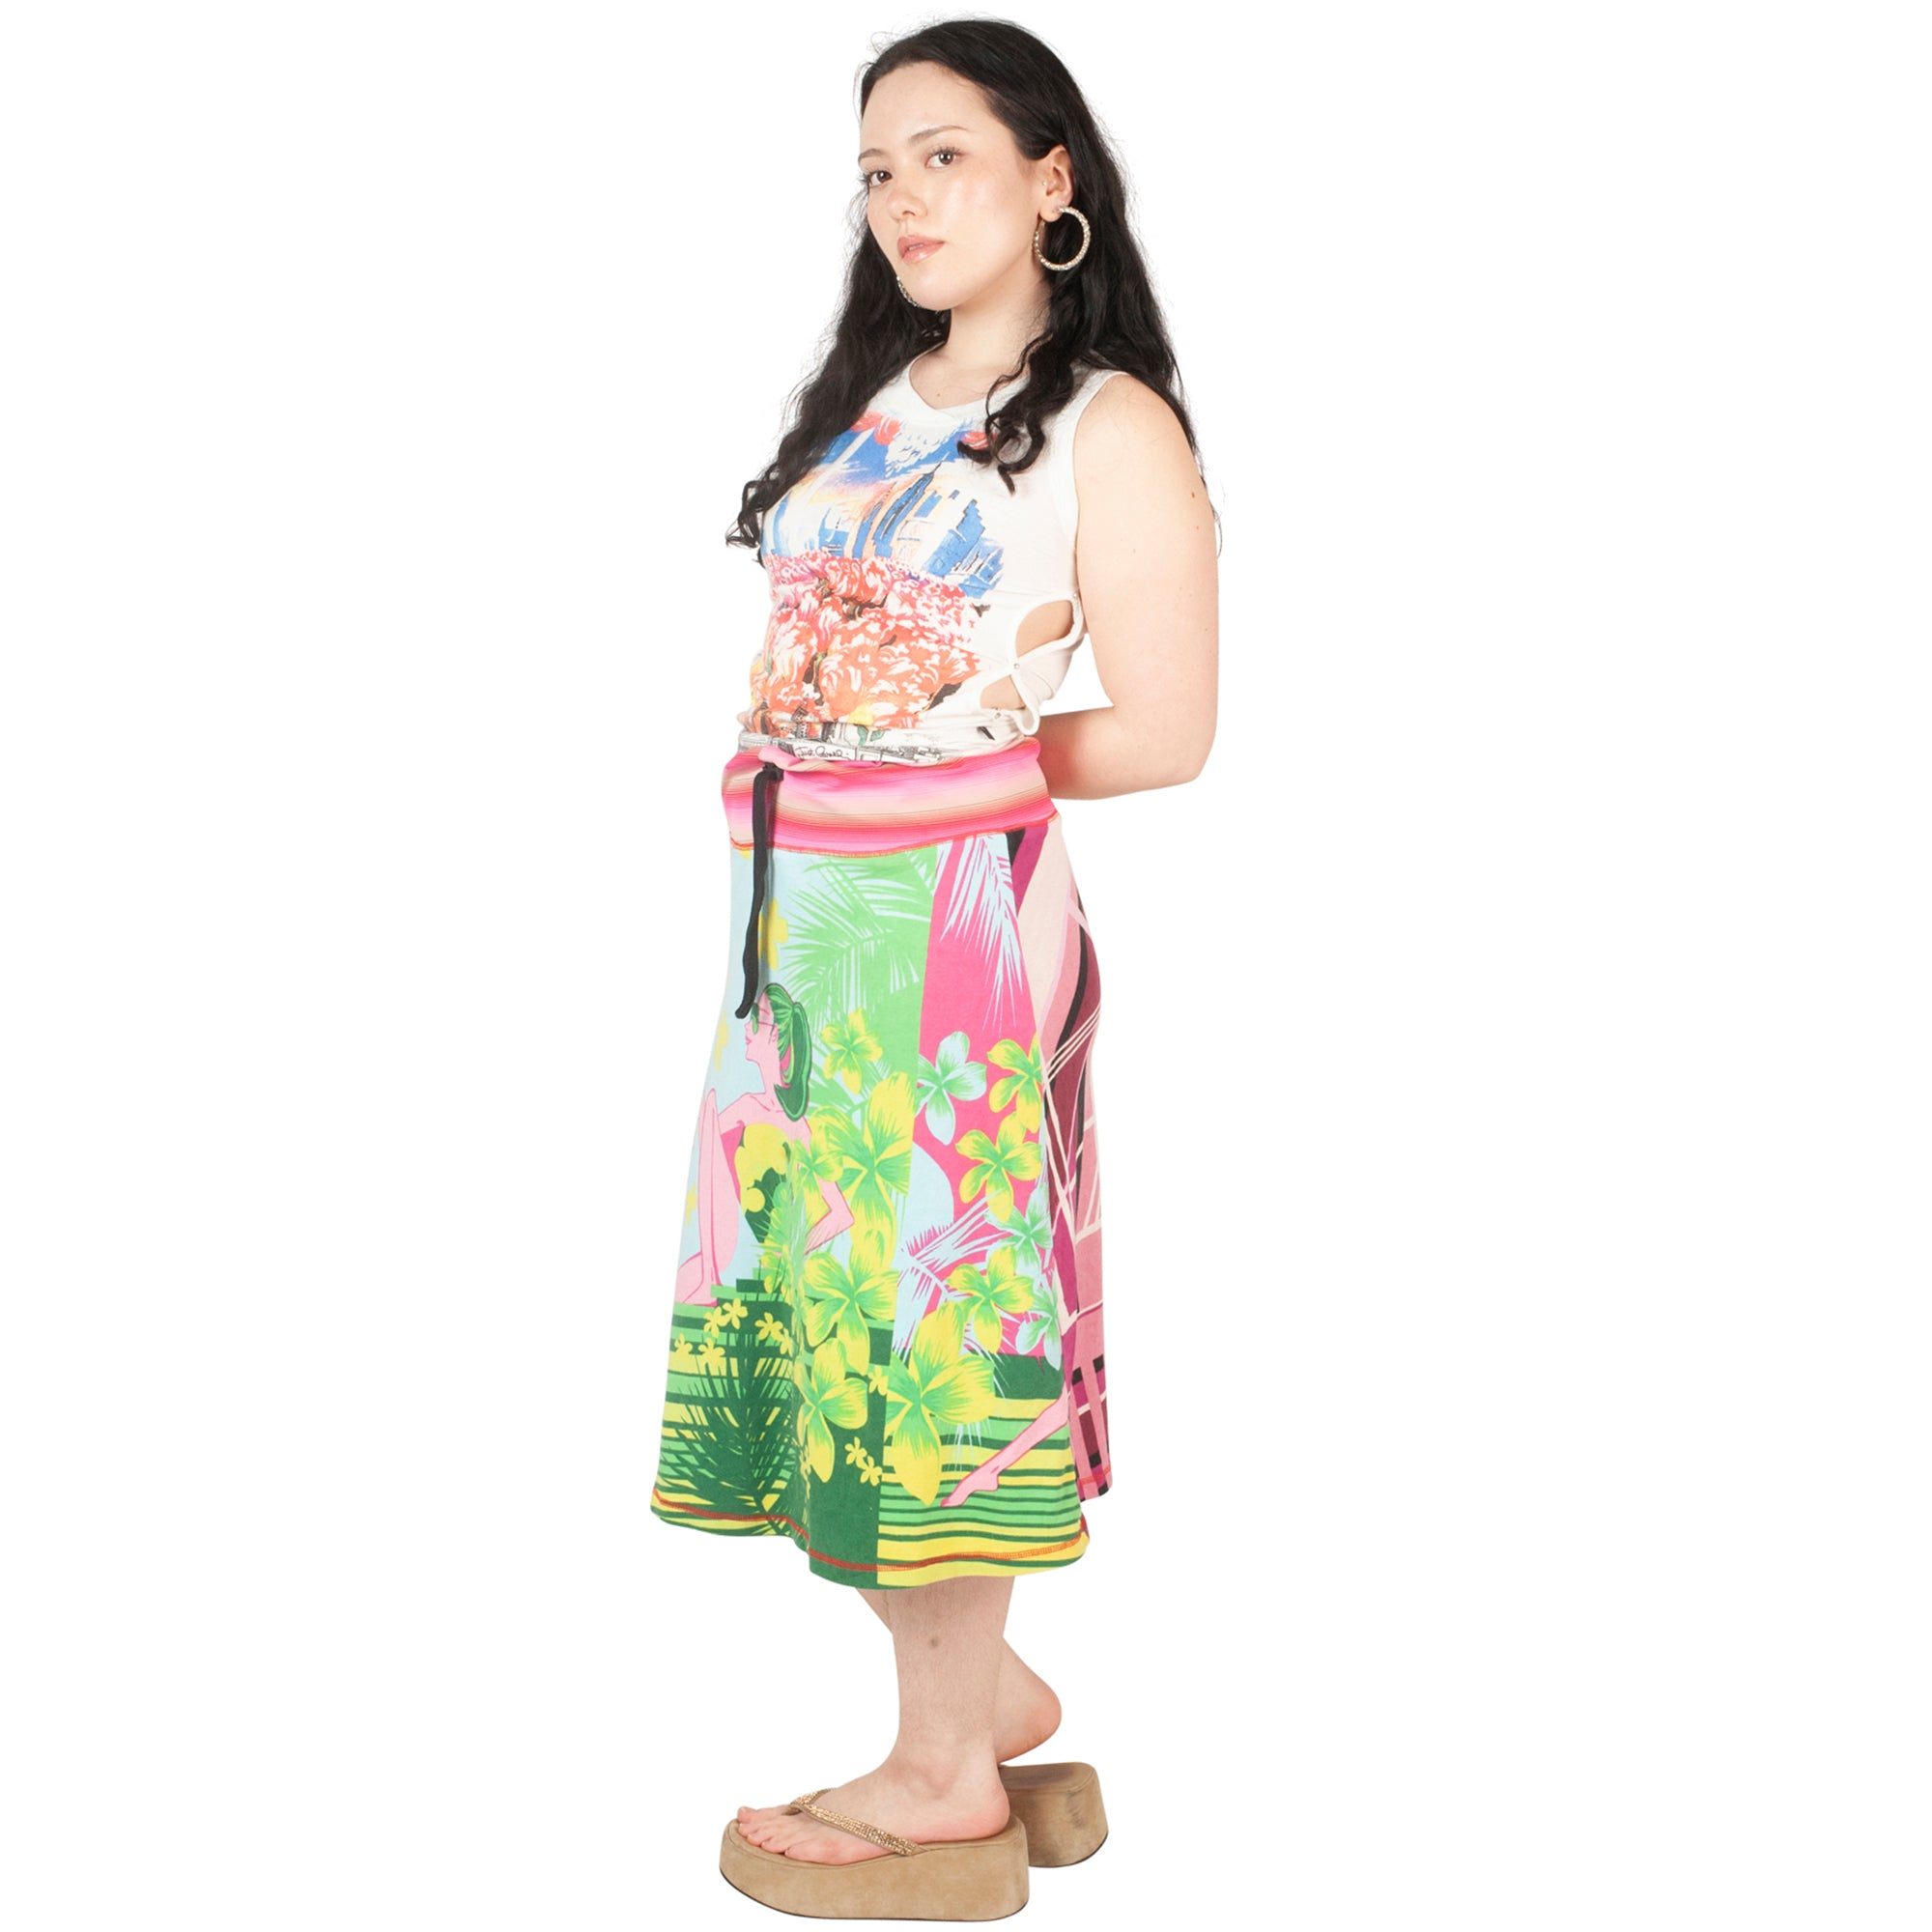 Custo Skirt (Multi) UK 8-12